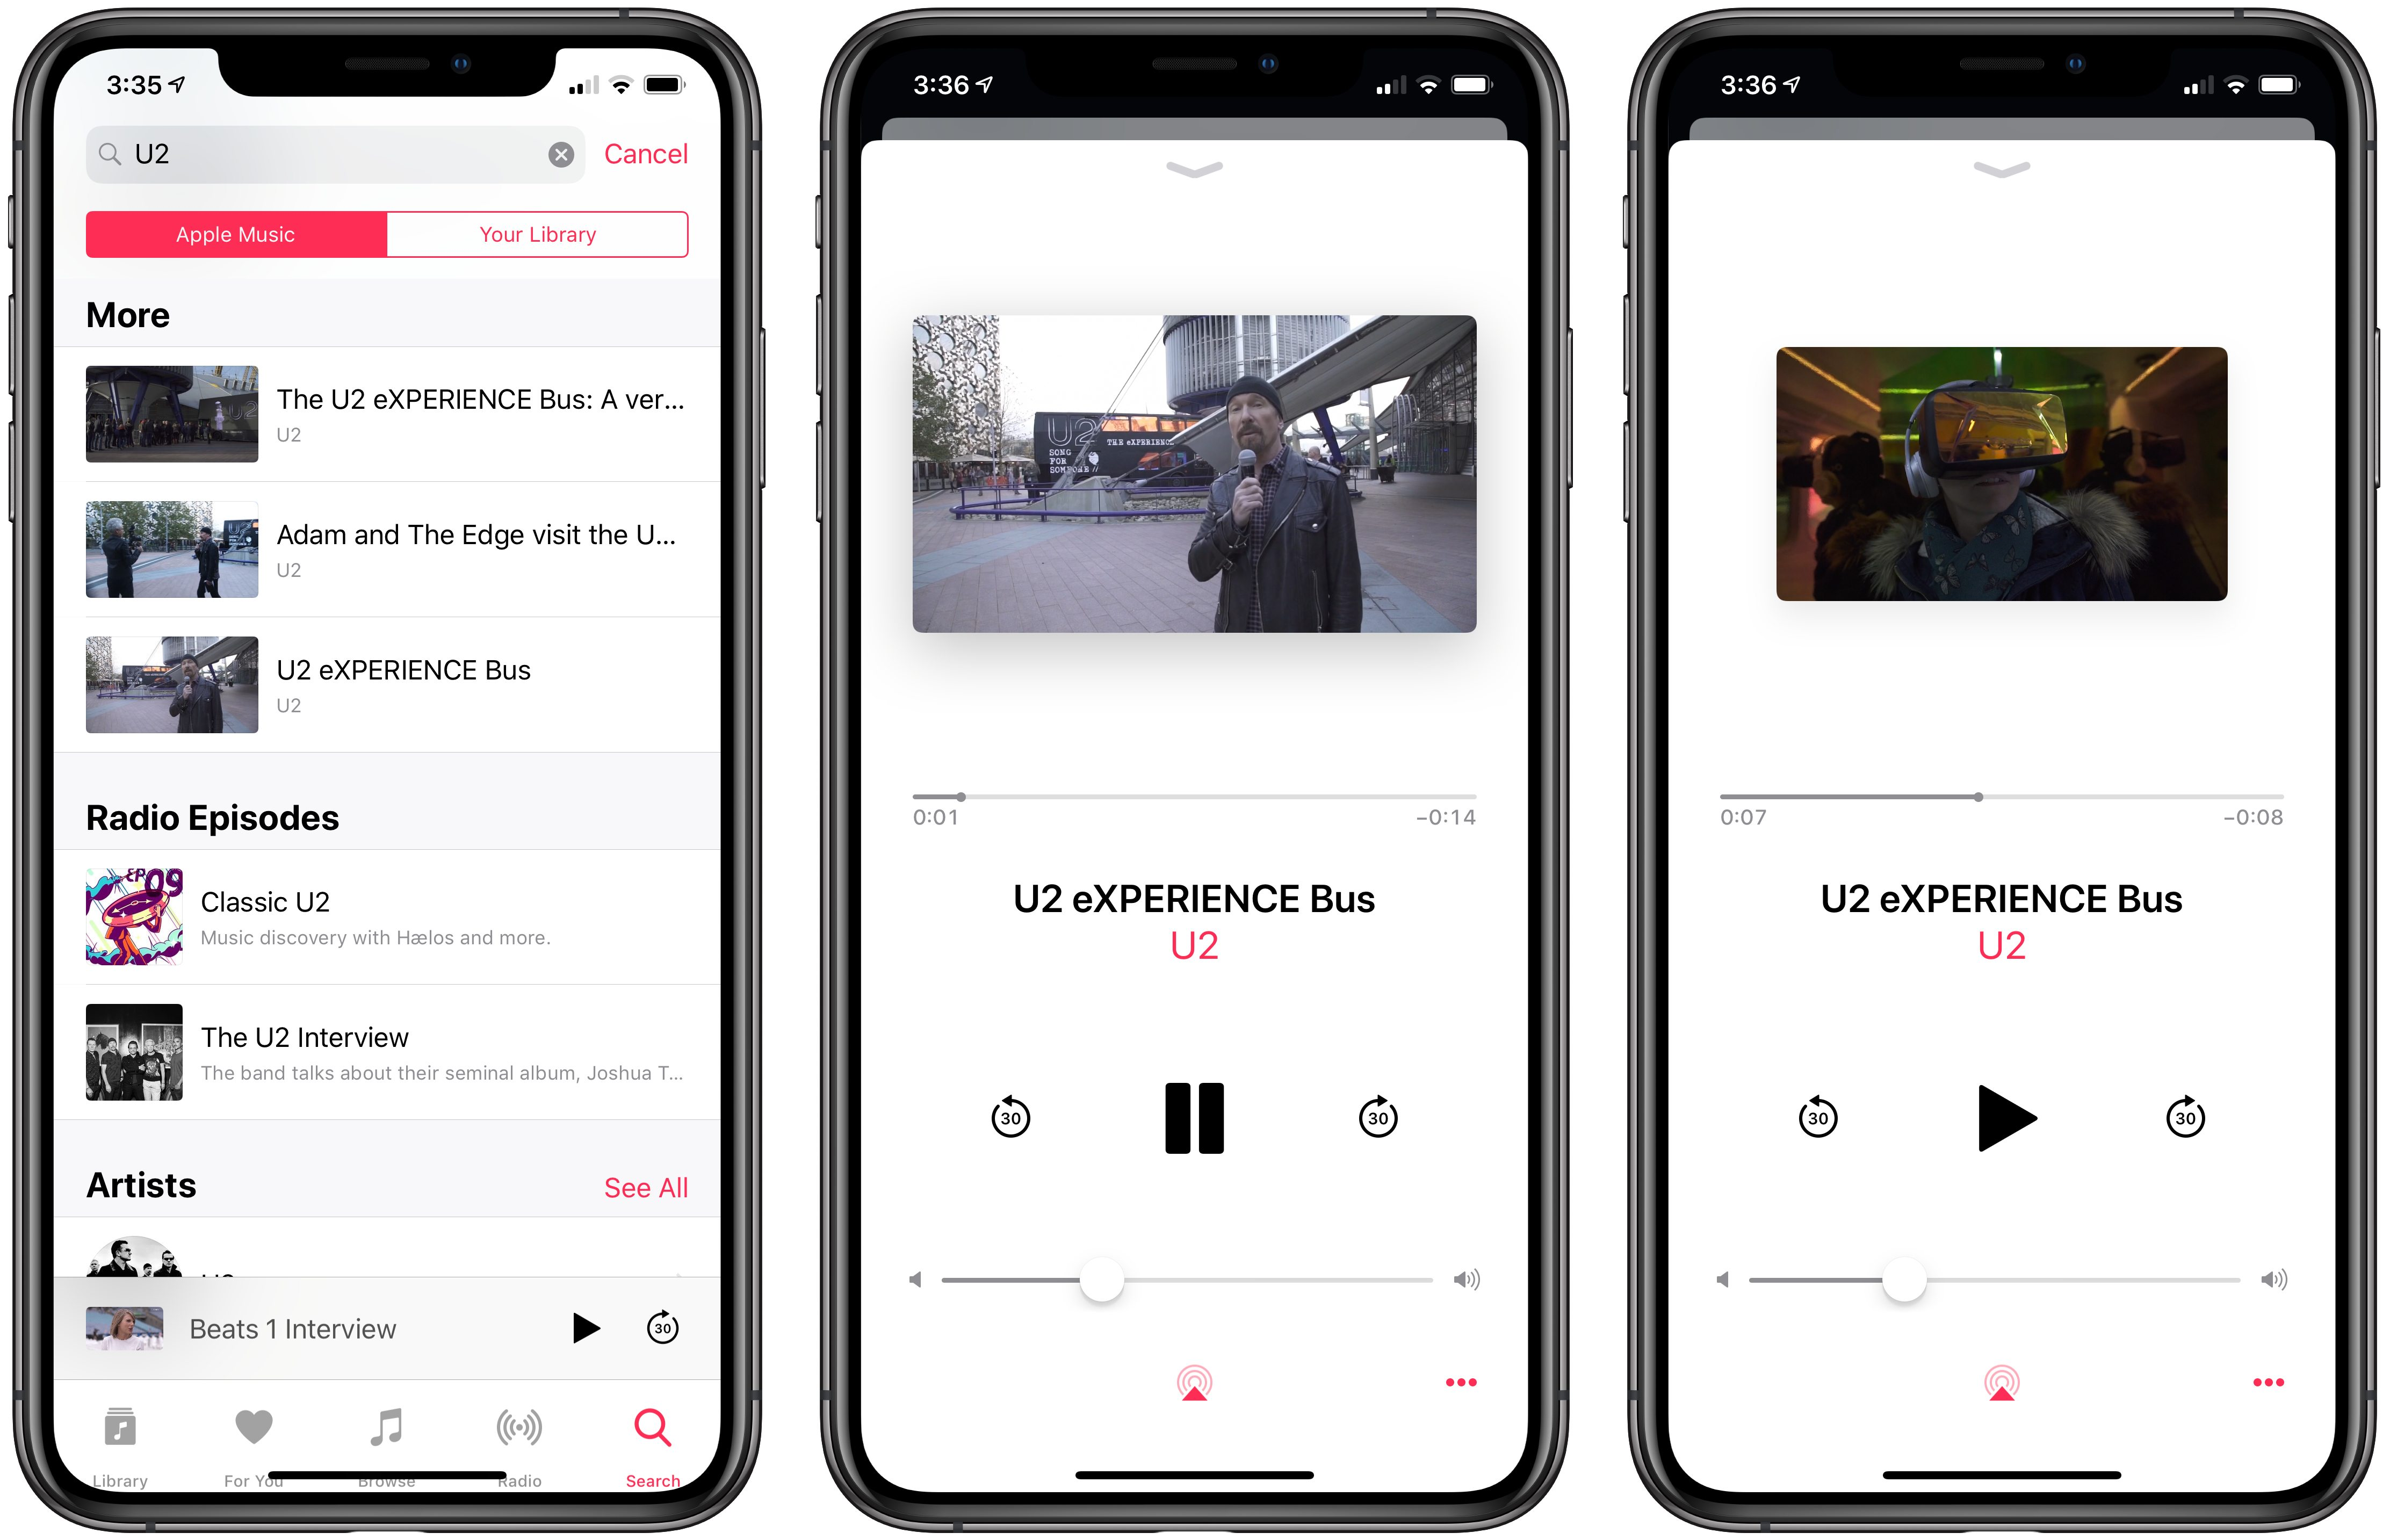 Apple Music Gets Anti-Social by Killing off its Connect Feature